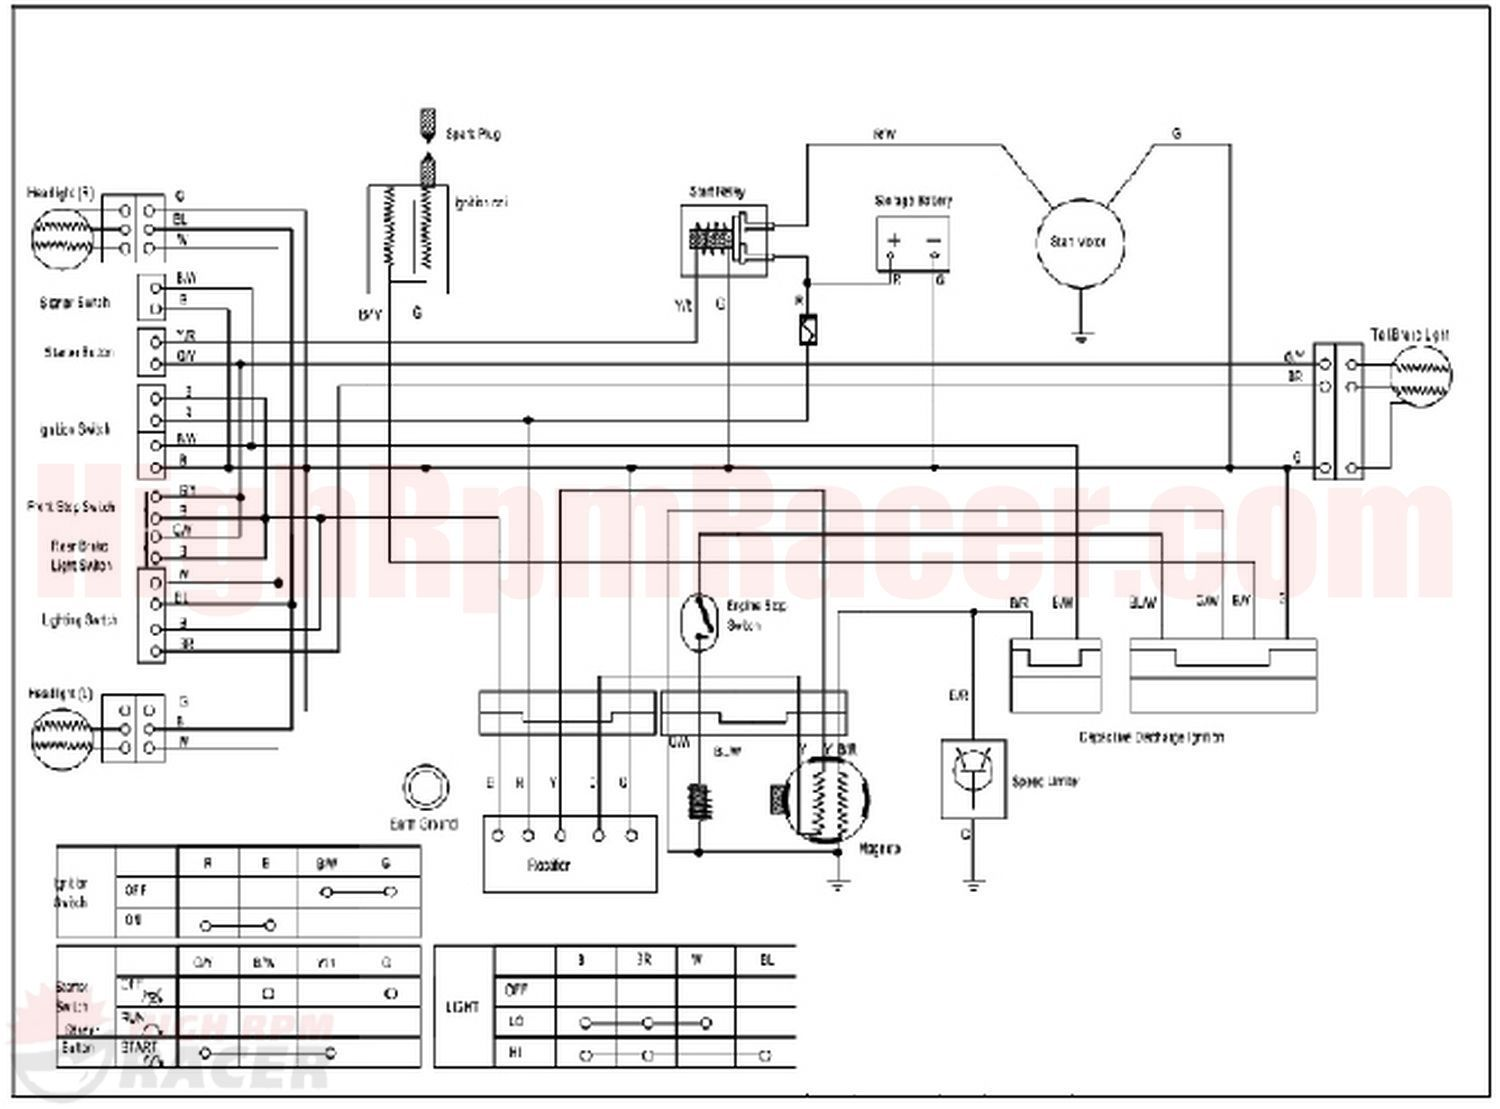 287eced1a872c94c2a3a13a8b8f91a8c baja 50 atv wiring diagram coolster wiring diagram \u2022 wiring roketa 250cc atv wiring diagram at webbmarketing.co